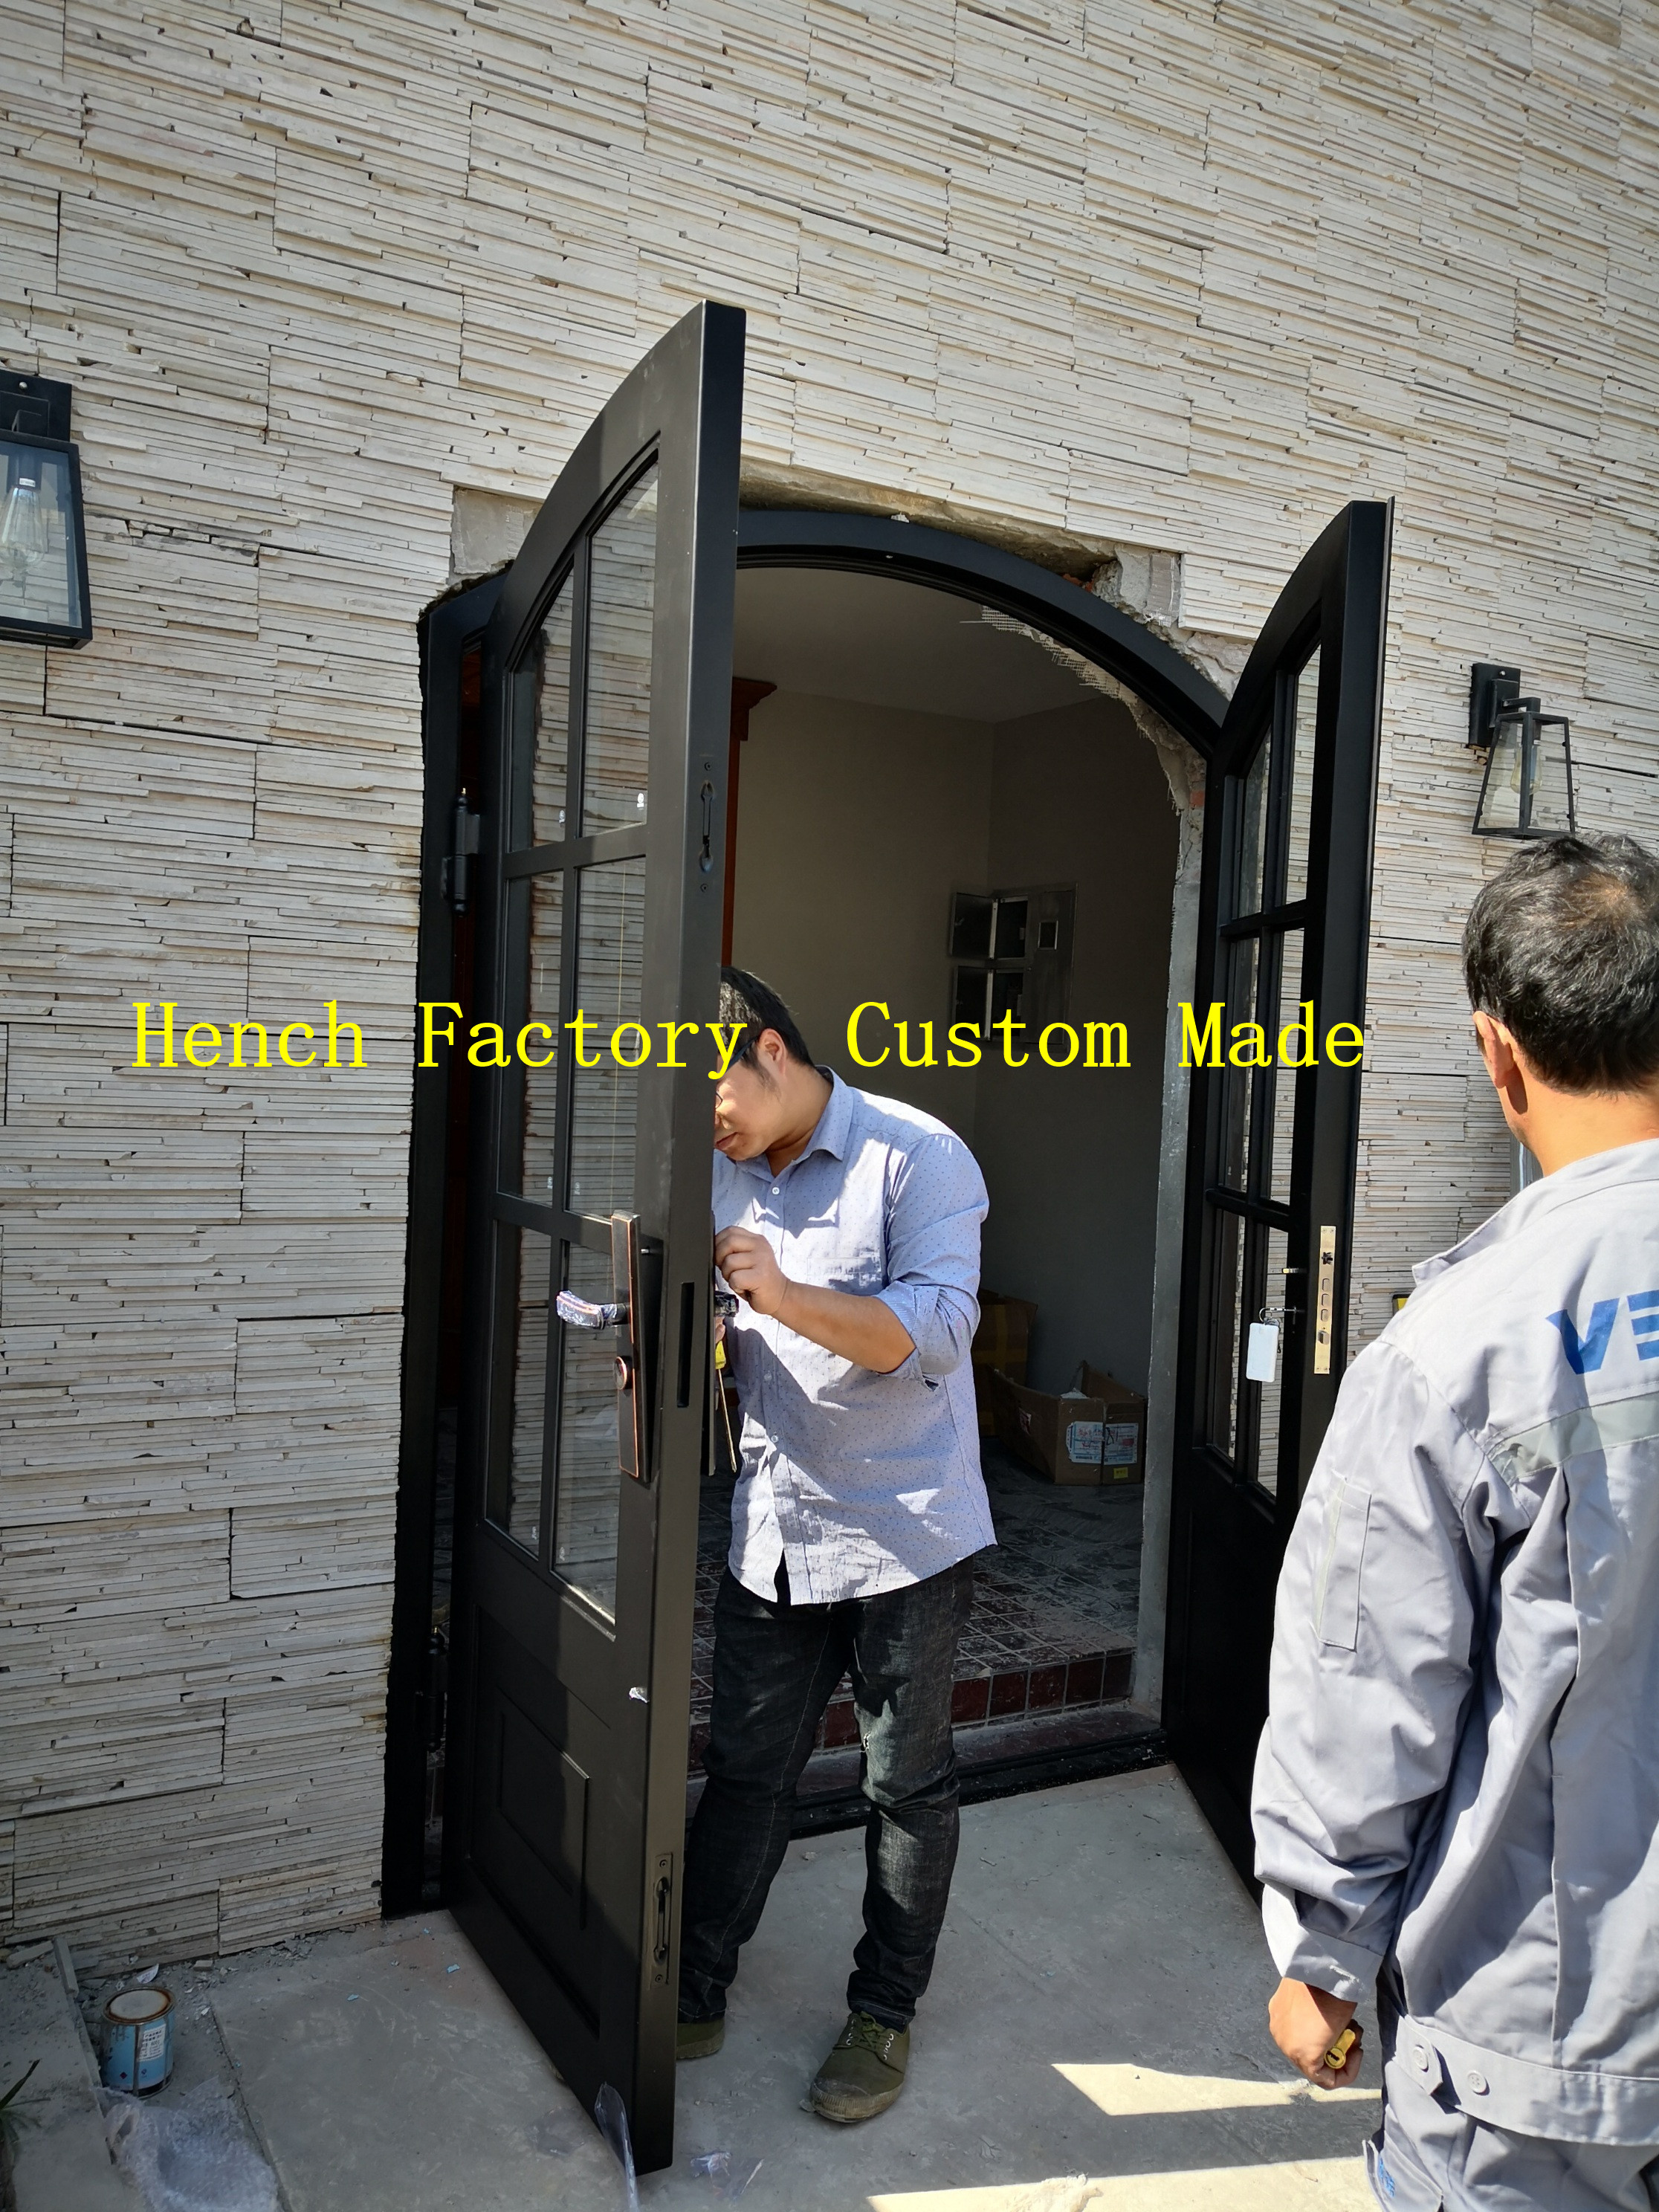 Shanghai Hench Brand China Factory 100% Custom Made Sale Australia Wine Room Doors Wrought Iron